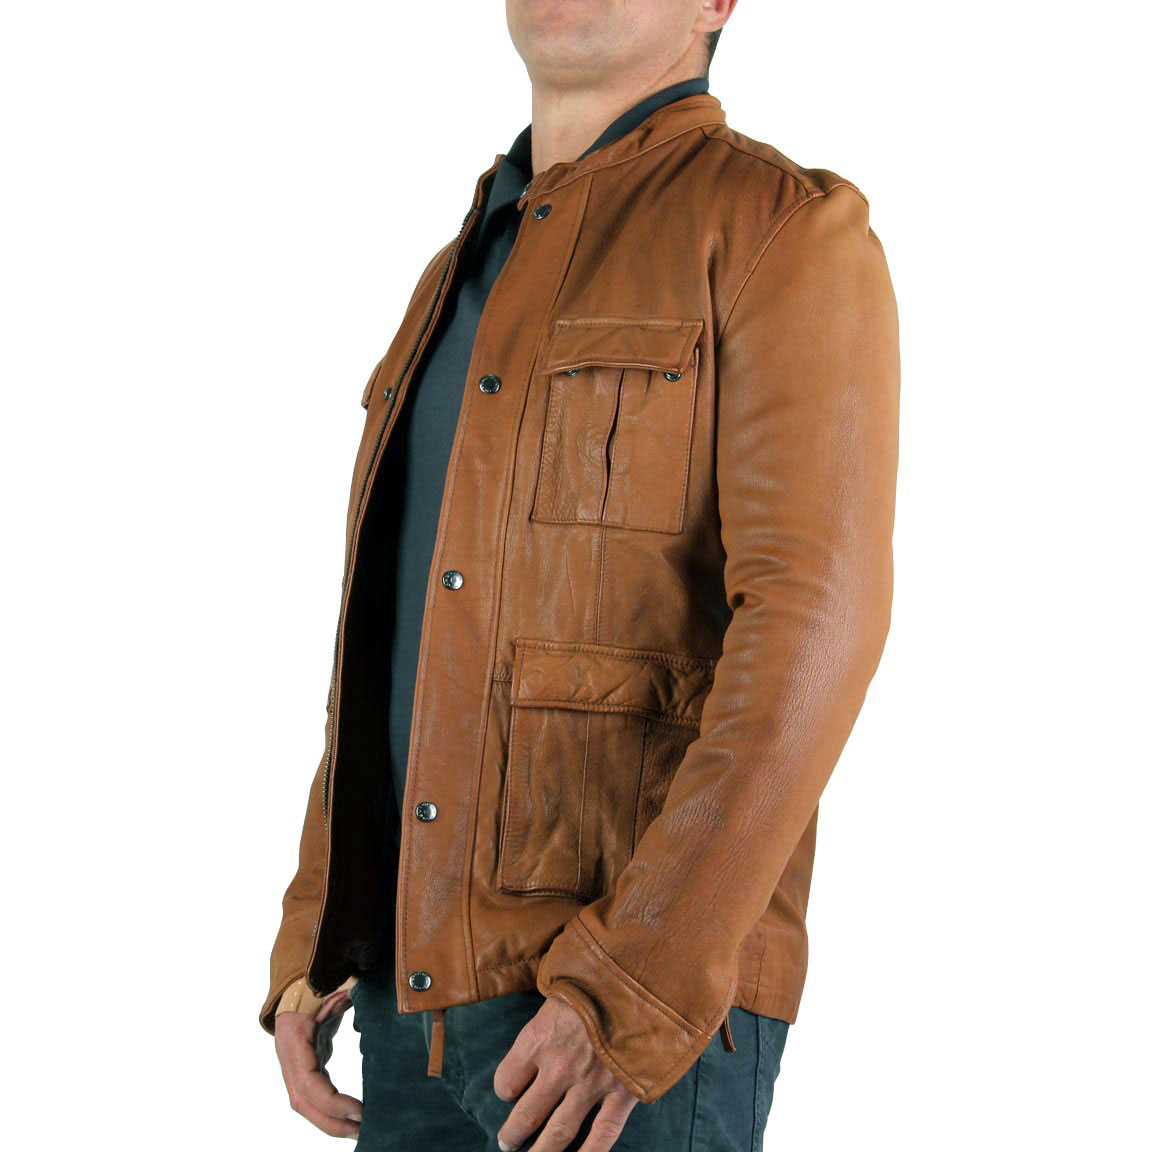 chevignon herren lederjacke vick cognac brown gr e m 50 ebay. Black Bedroom Furniture Sets. Home Design Ideas